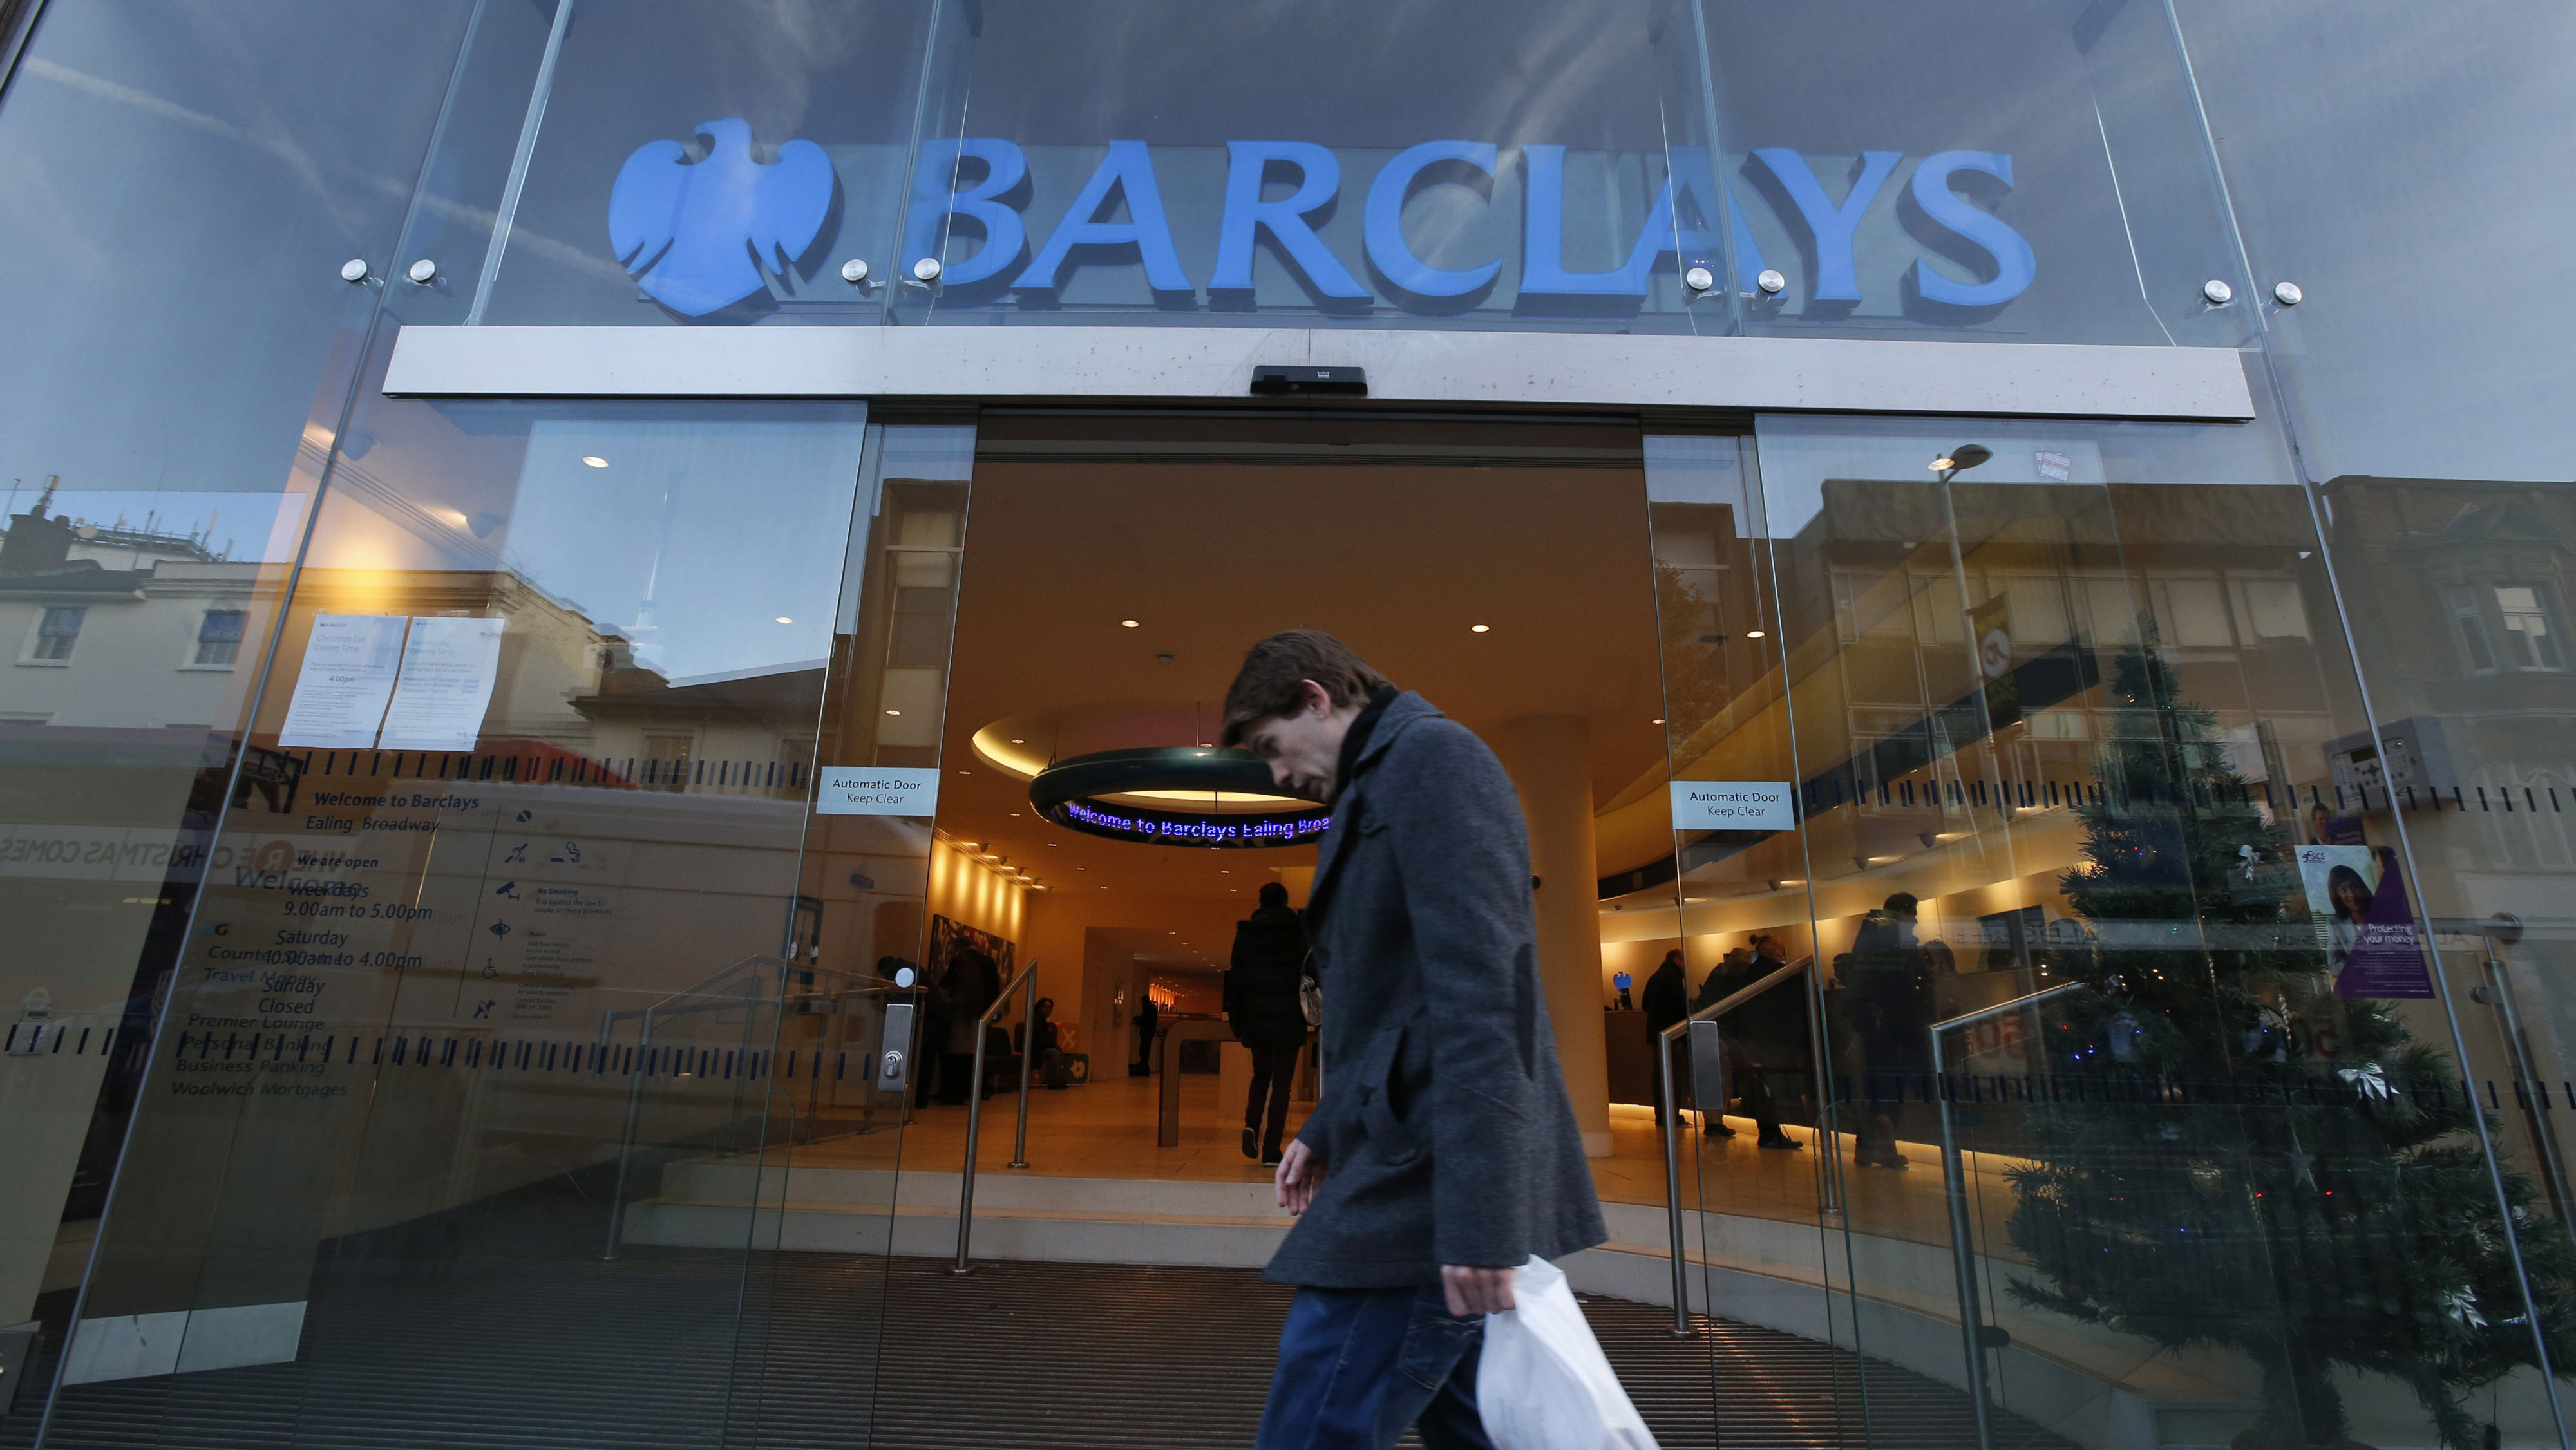 A man walks past a Barclays Bank branch in London, Wednesday, Dec. 4, 2013. The European Commission has fined a group of major global banks a total of 1.7 billion euros (2.3 billion US dollars) for colluding to profit from the interest rates market. The banks are accused of manipulating for years European and Japanese benchmark interest rates that affect hundreds of billions of dollars in contracts globally, from mortgages to credit card bills.The banks named as participating in cartels were Barclays, Deutsche Bank, Royal Bank of Scotland, Societe Generale, Credit Agricole, HSBC, JPMorgan, UBS and Citigroup. Barclays escaped fines because it was the bank that notified the commission of the cartel's existence, while JPMorgan, HSBC and Credit Agricole have as yet not settled. (AP Photo/Lefteris Pitarakis)